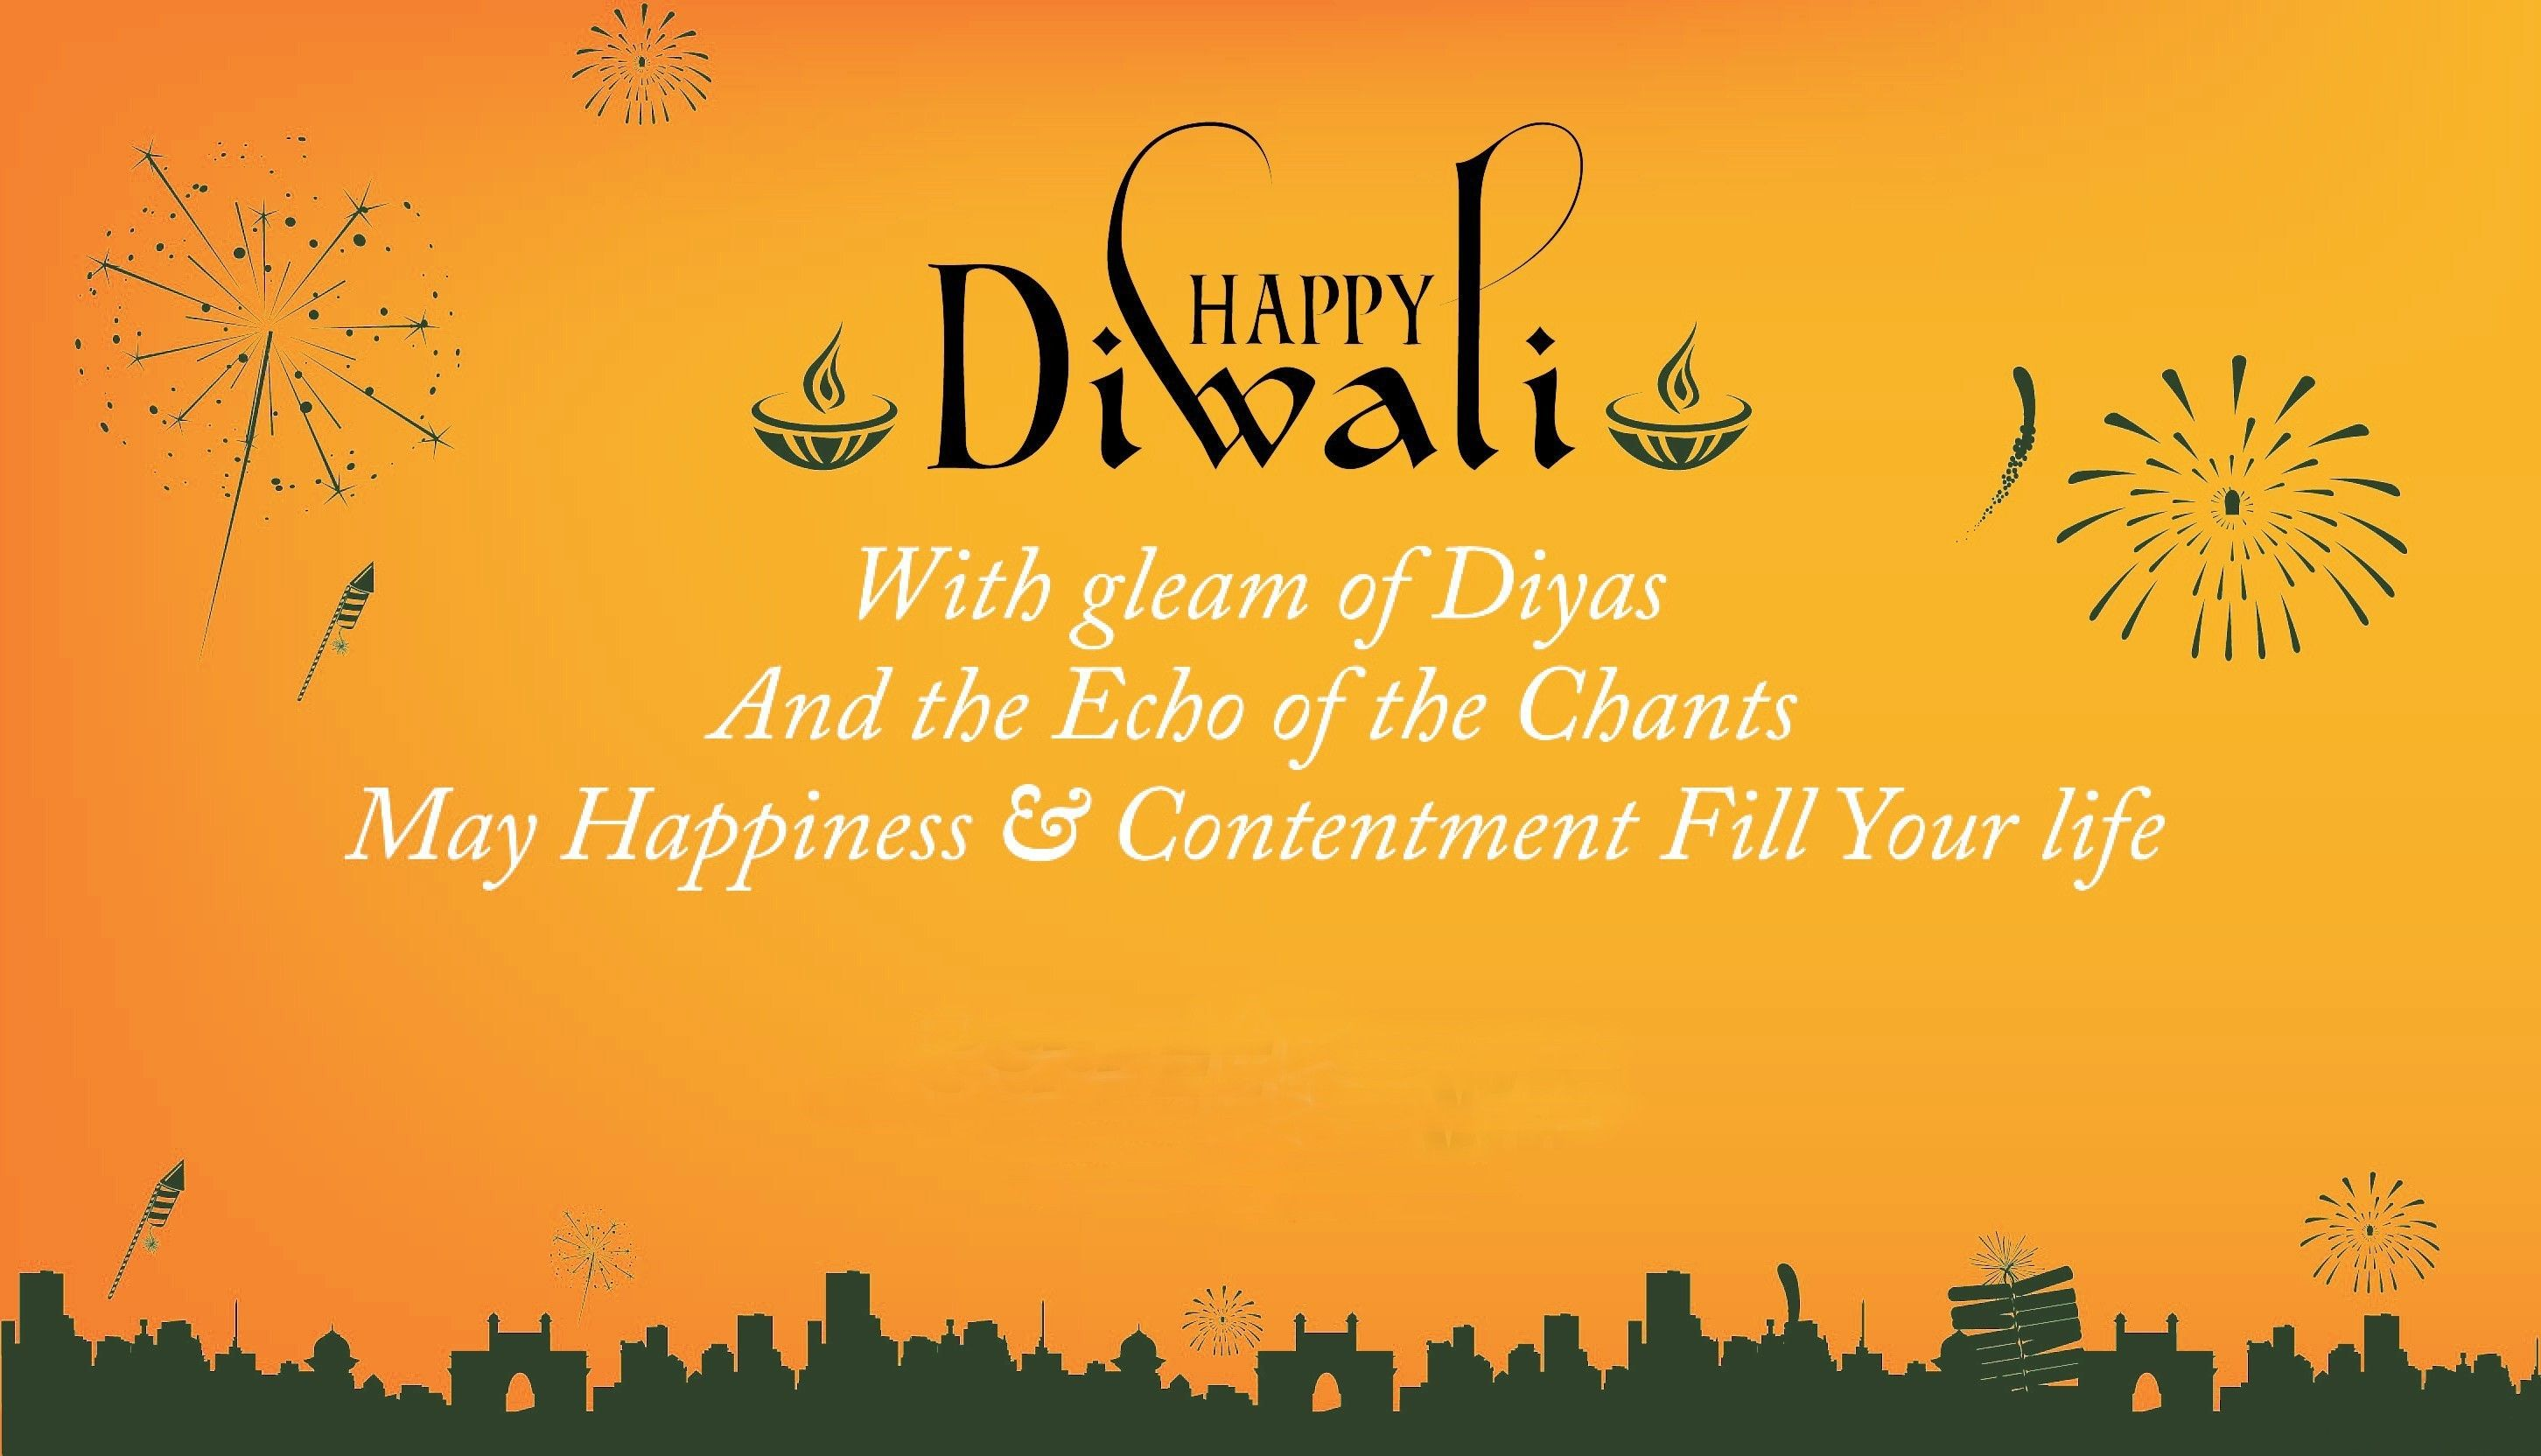 Download free happy diwali 2015 cards and greetings httpwww download free happy diwali 2015 cards and greetings httphappydiwali2u m4hsunfo